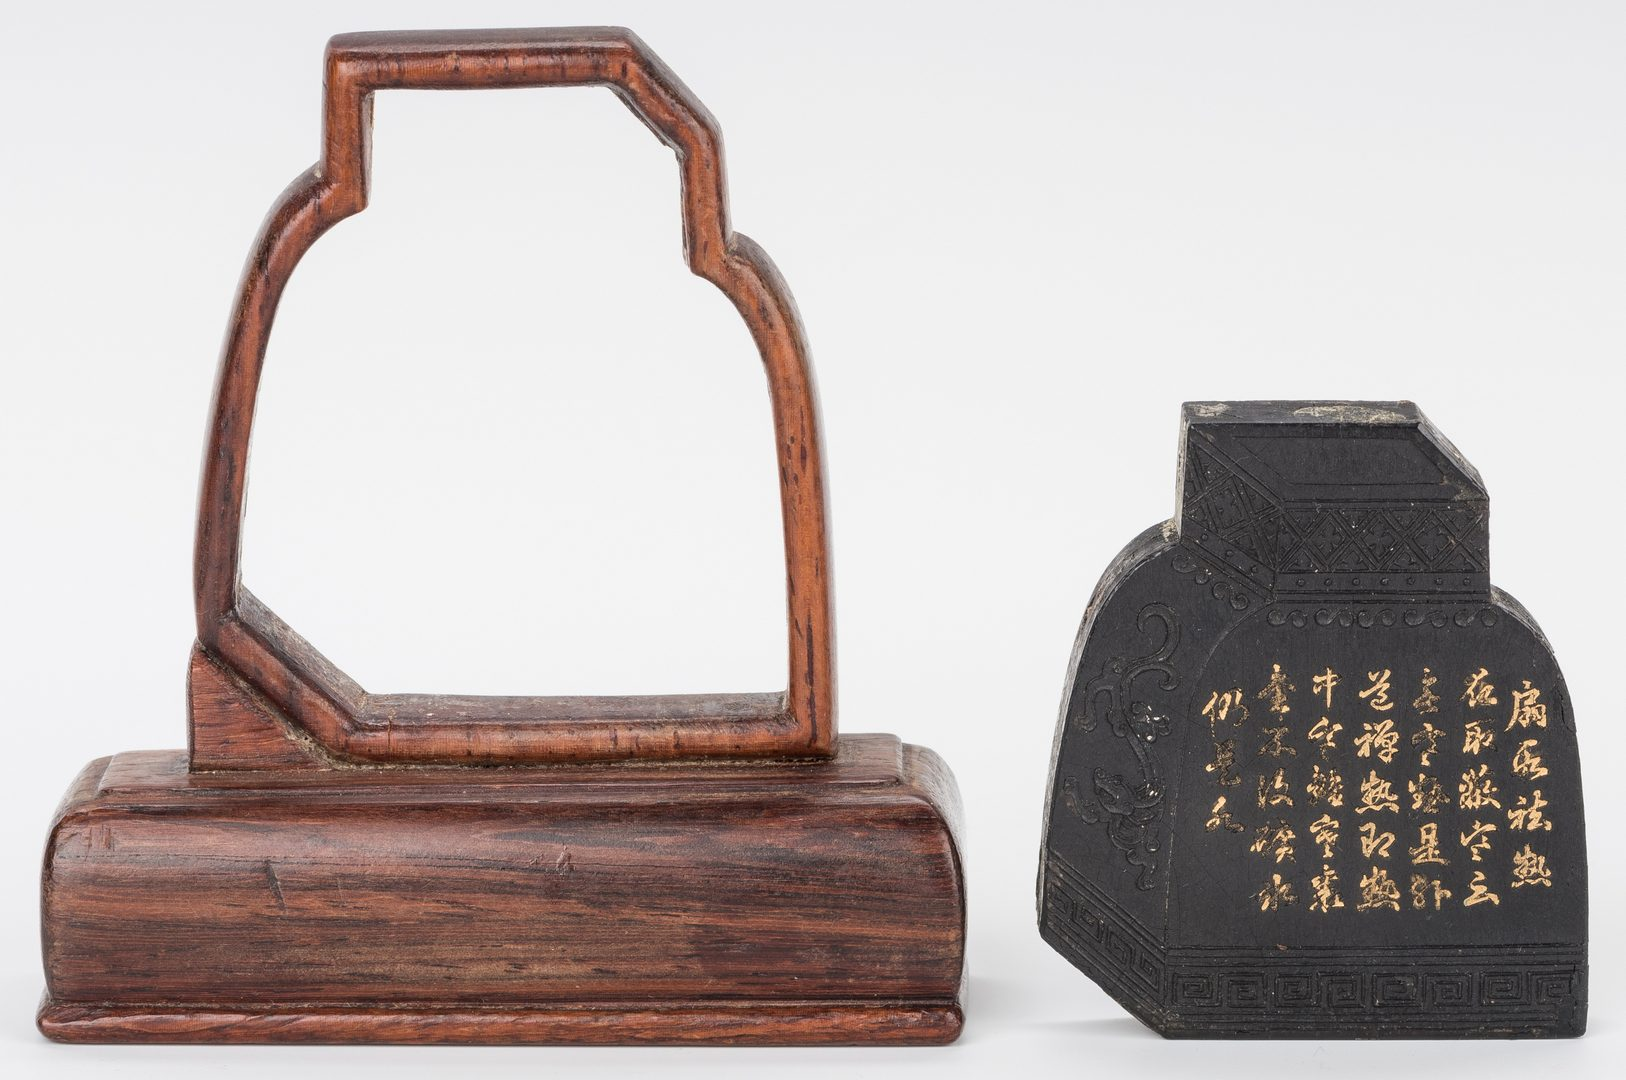 Lot 32: Chop, snuff bottle, bronze vase and ink stone – 4 items